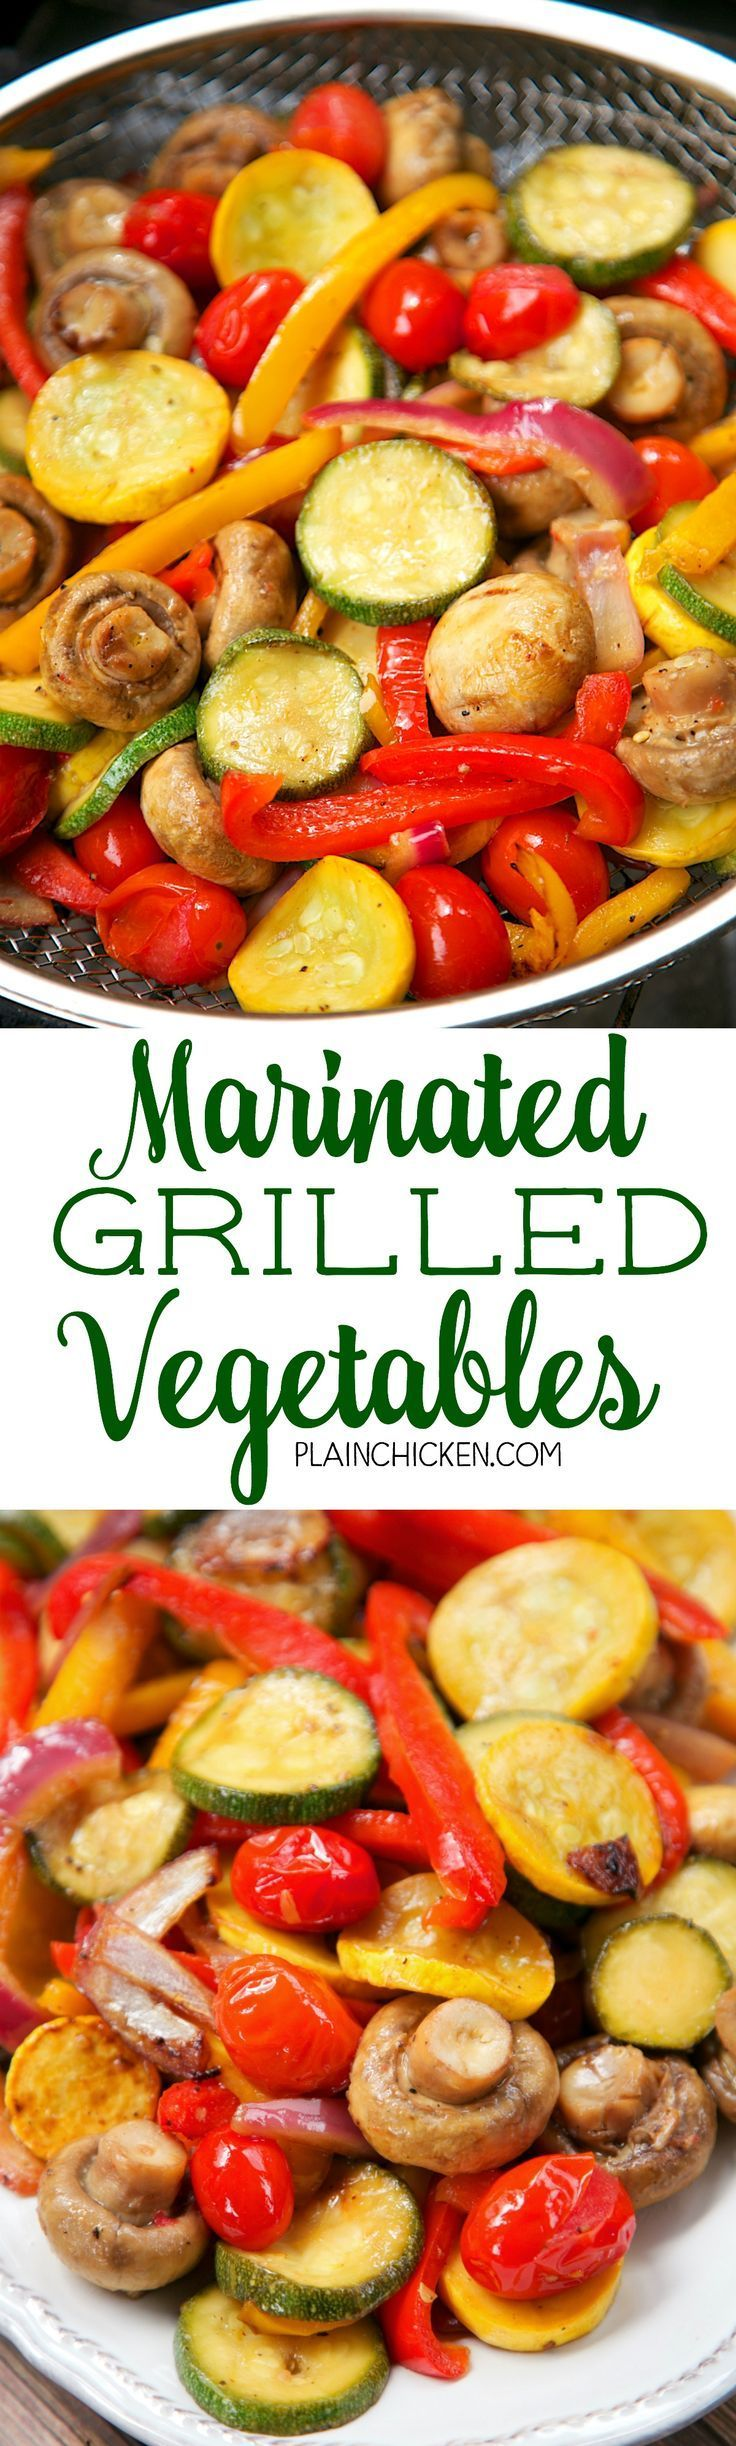 Marinated Grilled Vegetables - zucchini, squash, mushrooms, tomatoes, red bell pepper, yellow bell pepper and red onion marinated in olive oil, soy sauce, lemon juice and garlic. Marinate veggies for 30 minutes and grill. Ready in about 15 minutes! SO easy and SO delicious! Everyone loves these vegetables! Use leftovers in a quiche. http://juicerblendercenter.com/category/juicer-reviews/